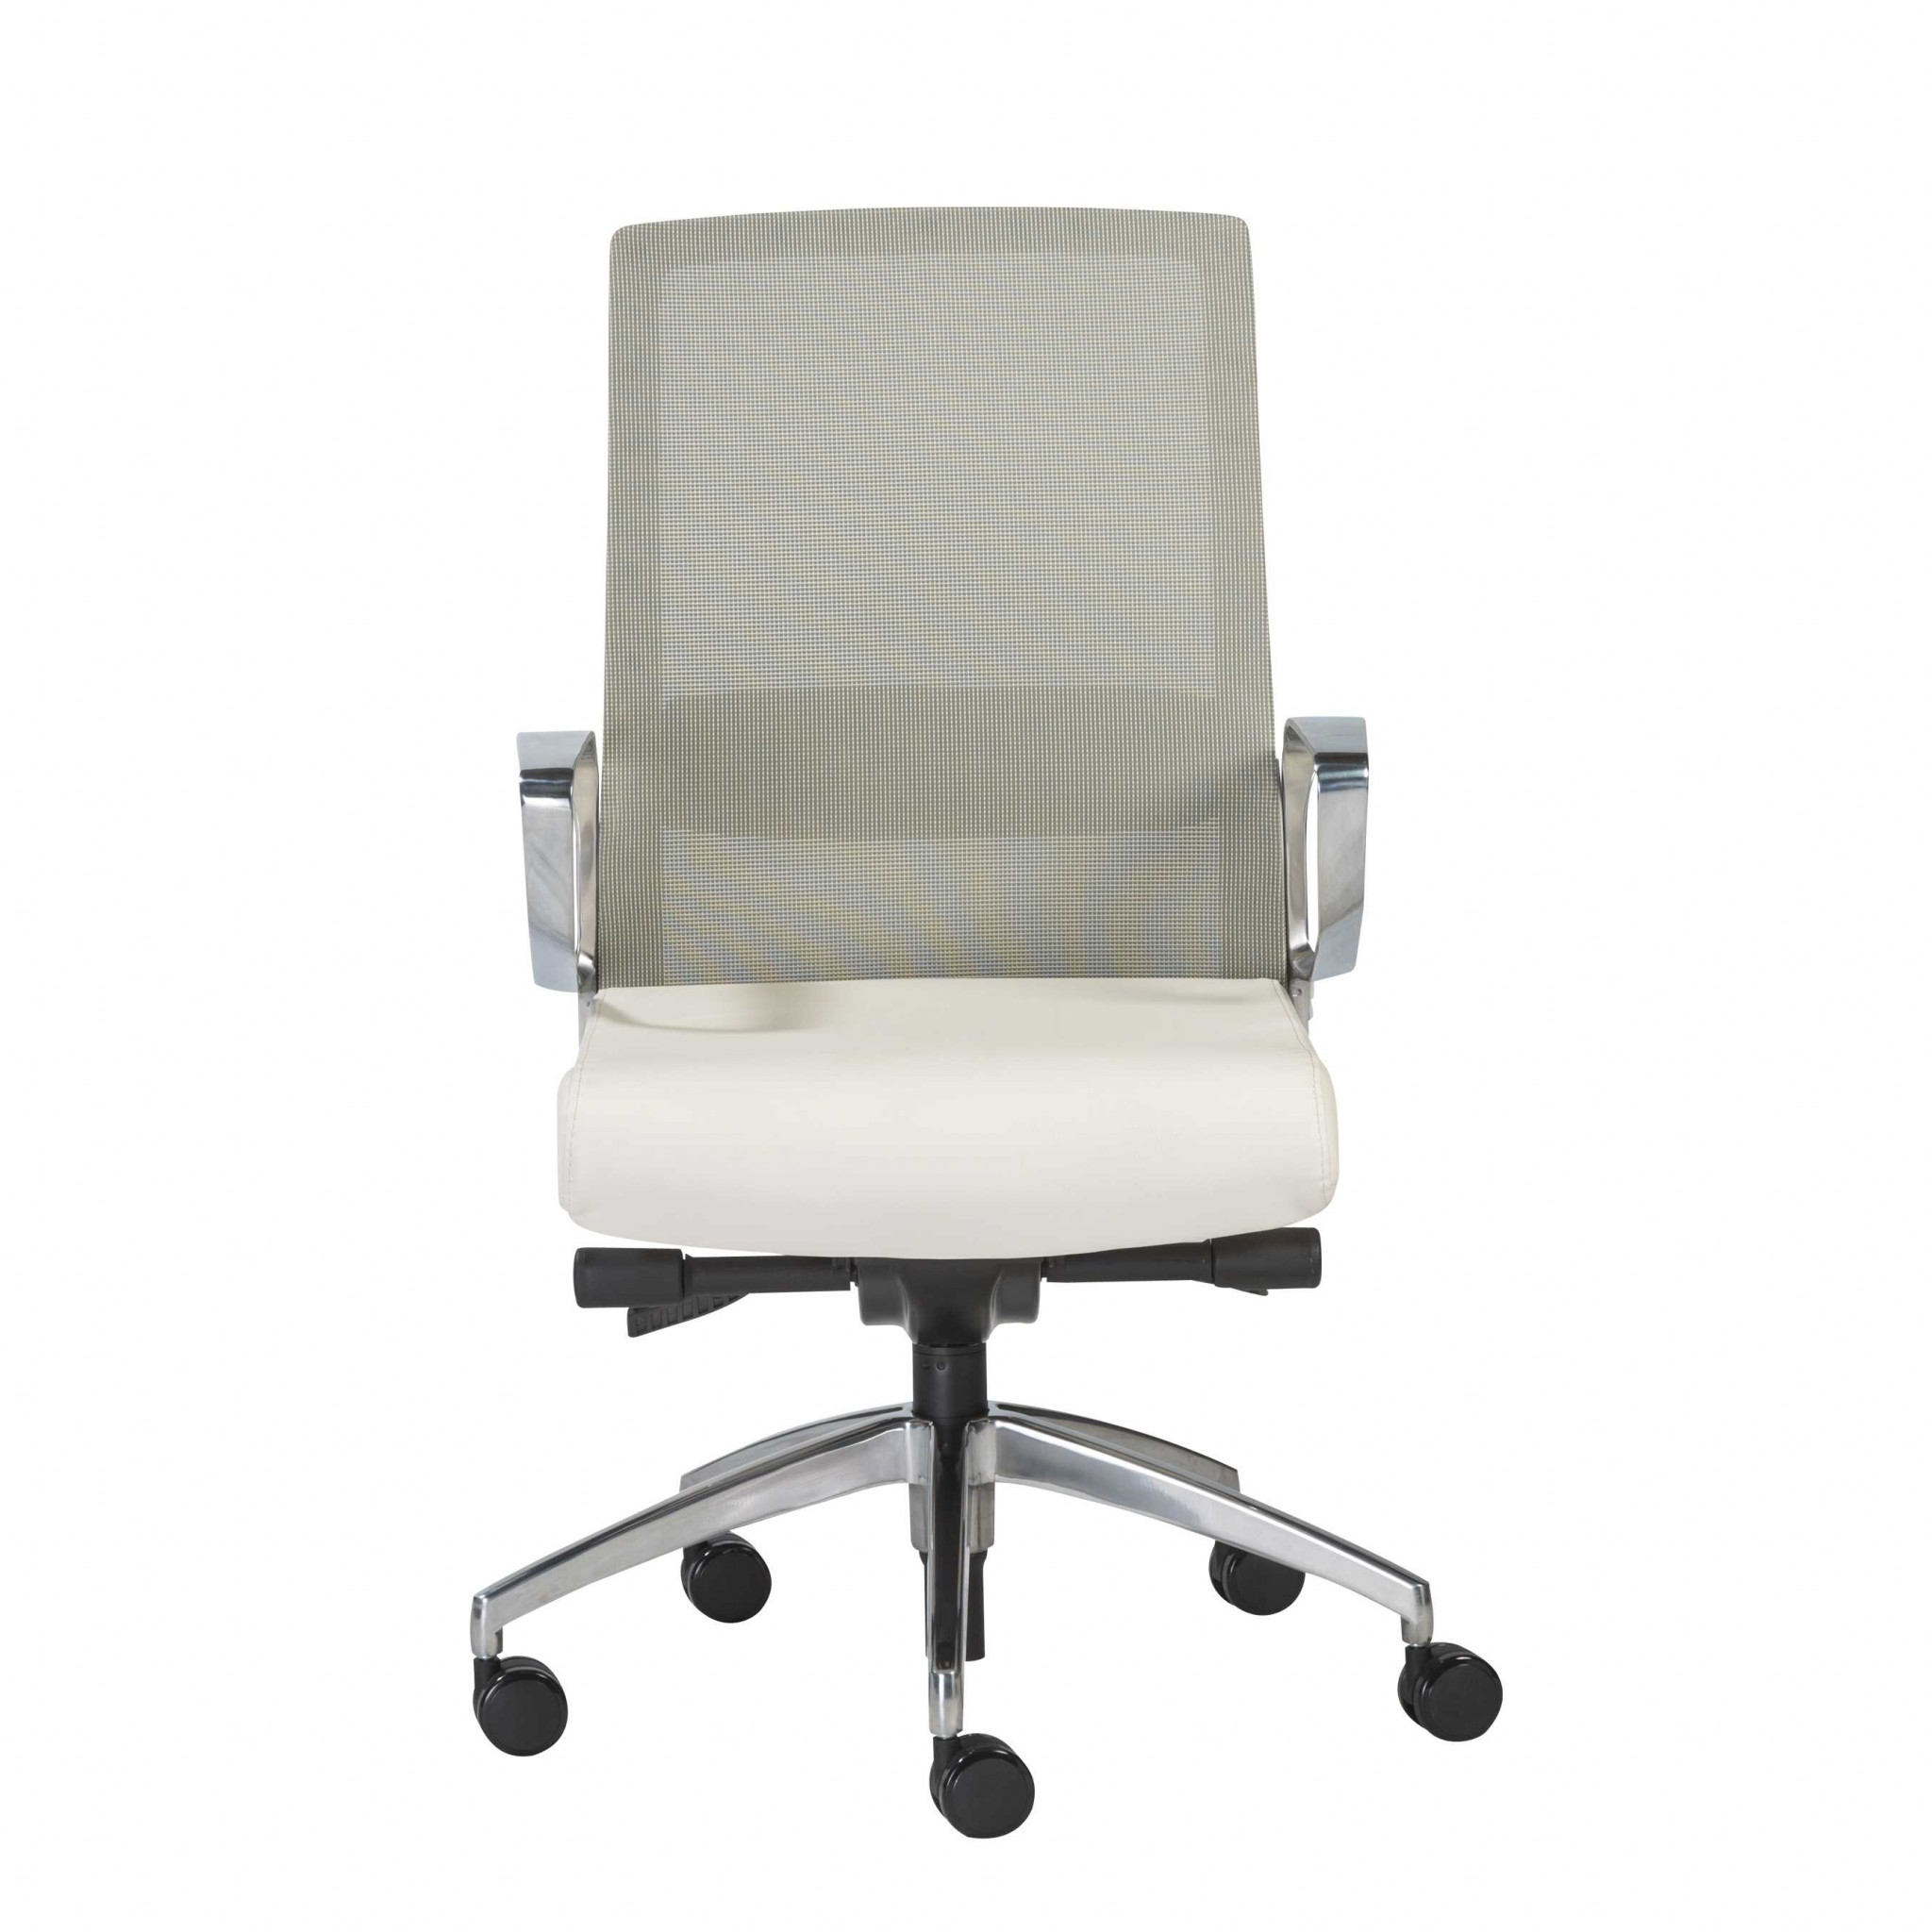 """25.99"""" X 24.81"""" X 42.92"""" Light Green Leatherette seat/Mesh Back Office Chair with Polished Aluminum Base"""